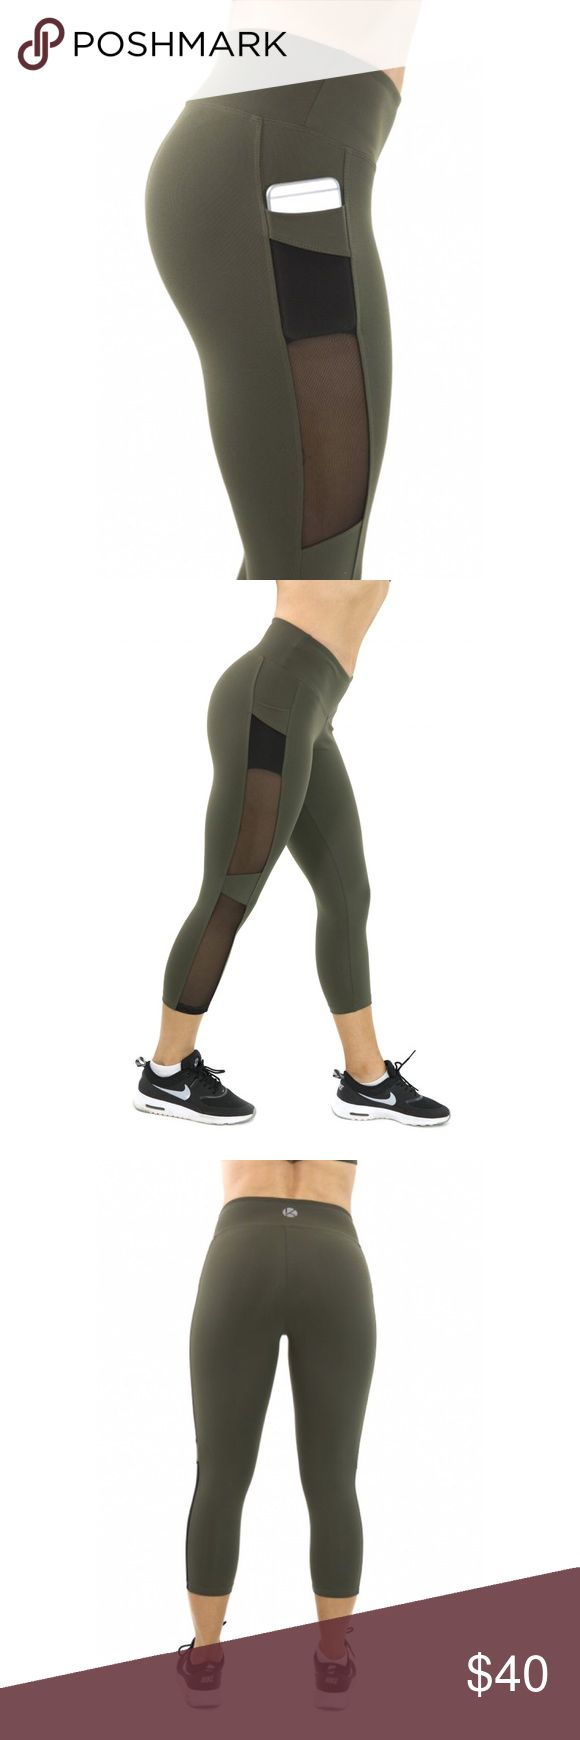 Olive Green Yoga Pants Brand New‼️ olive green sports leggings with side mesh cut out and a pocket for your cell phone ✅✅ Kathyana Pants Leggings